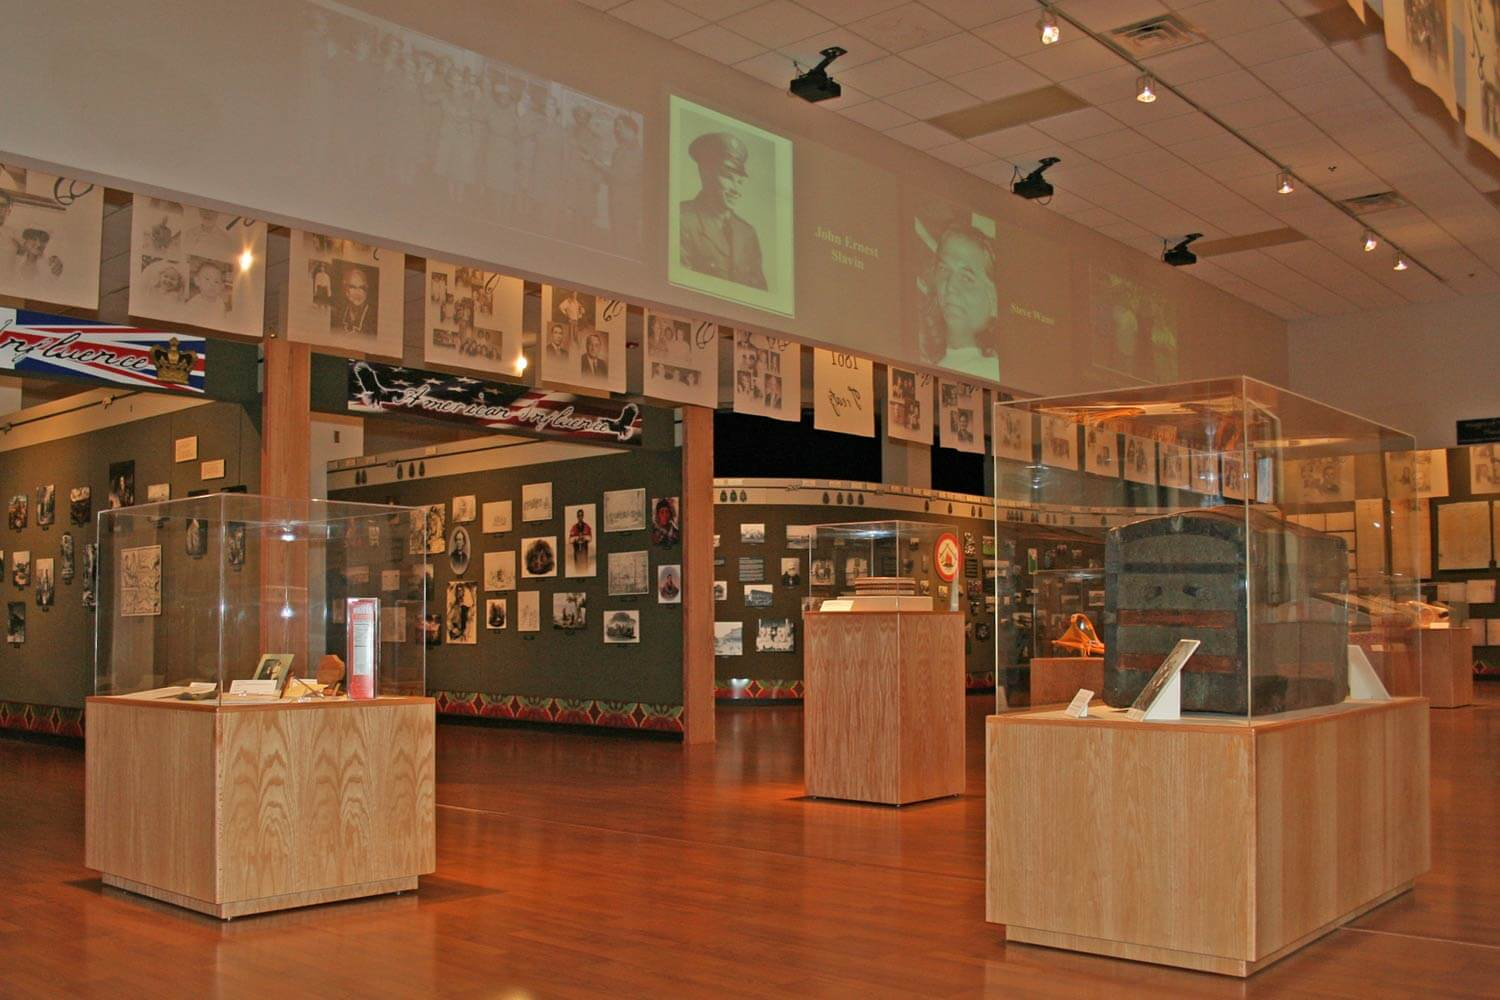 CPN Cultural Heritage Center Historical Artifacts Image